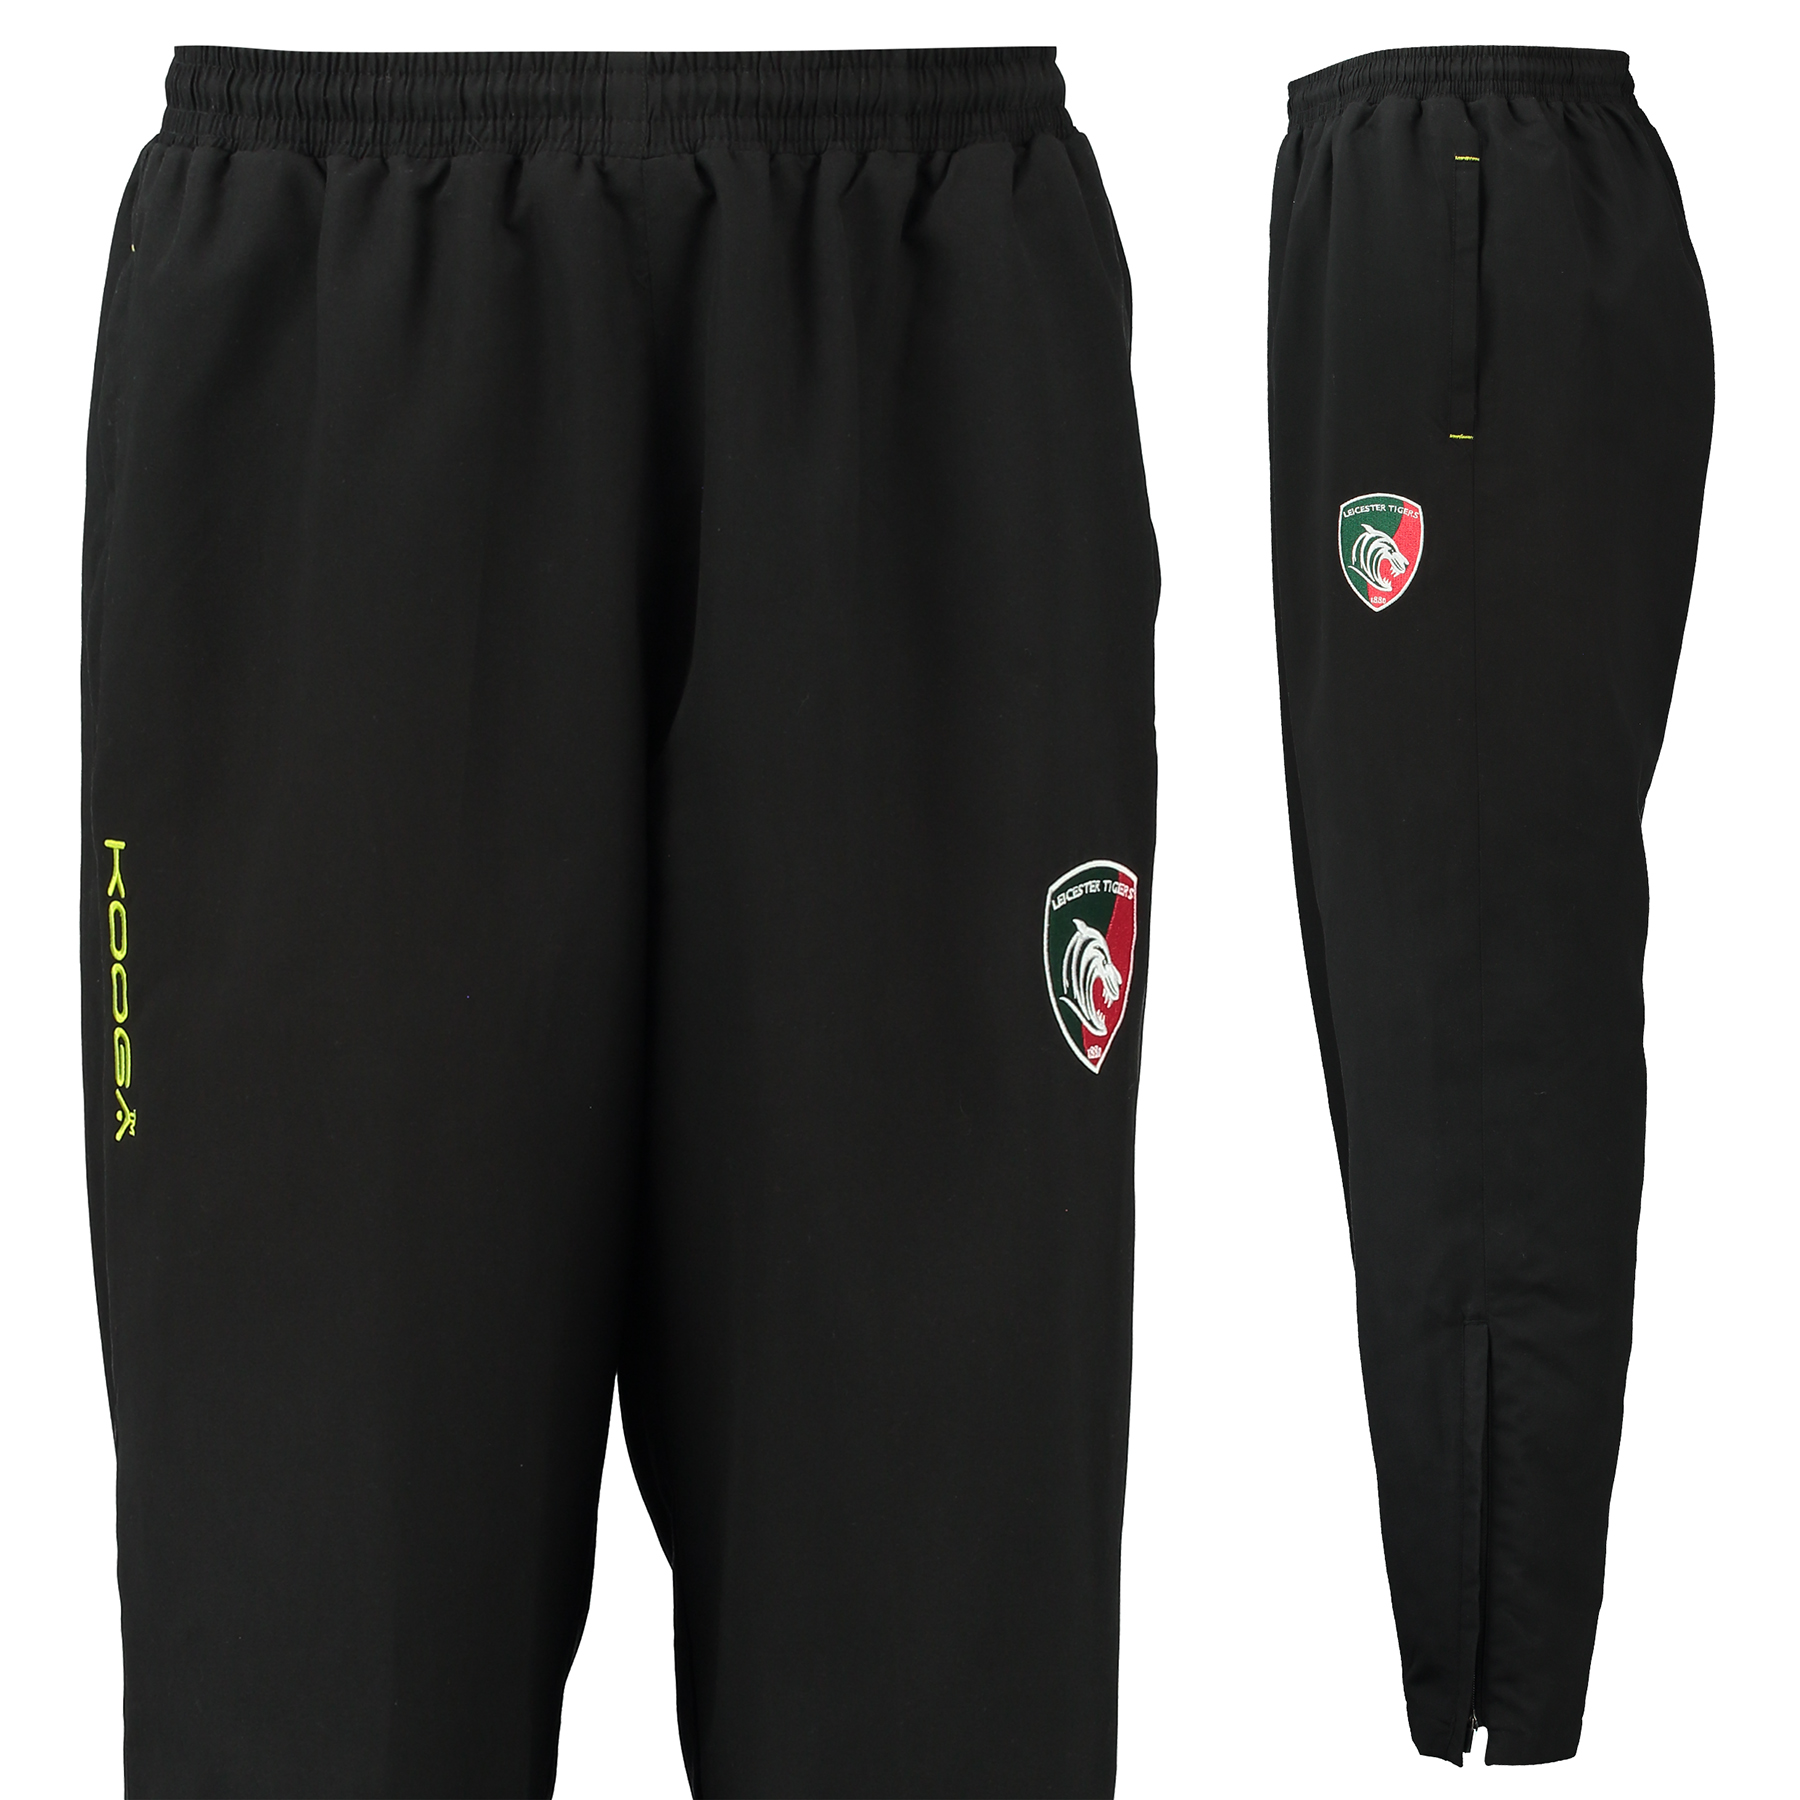 Leicester Tigers Microfibre Track Pant - Black/Fluro Green